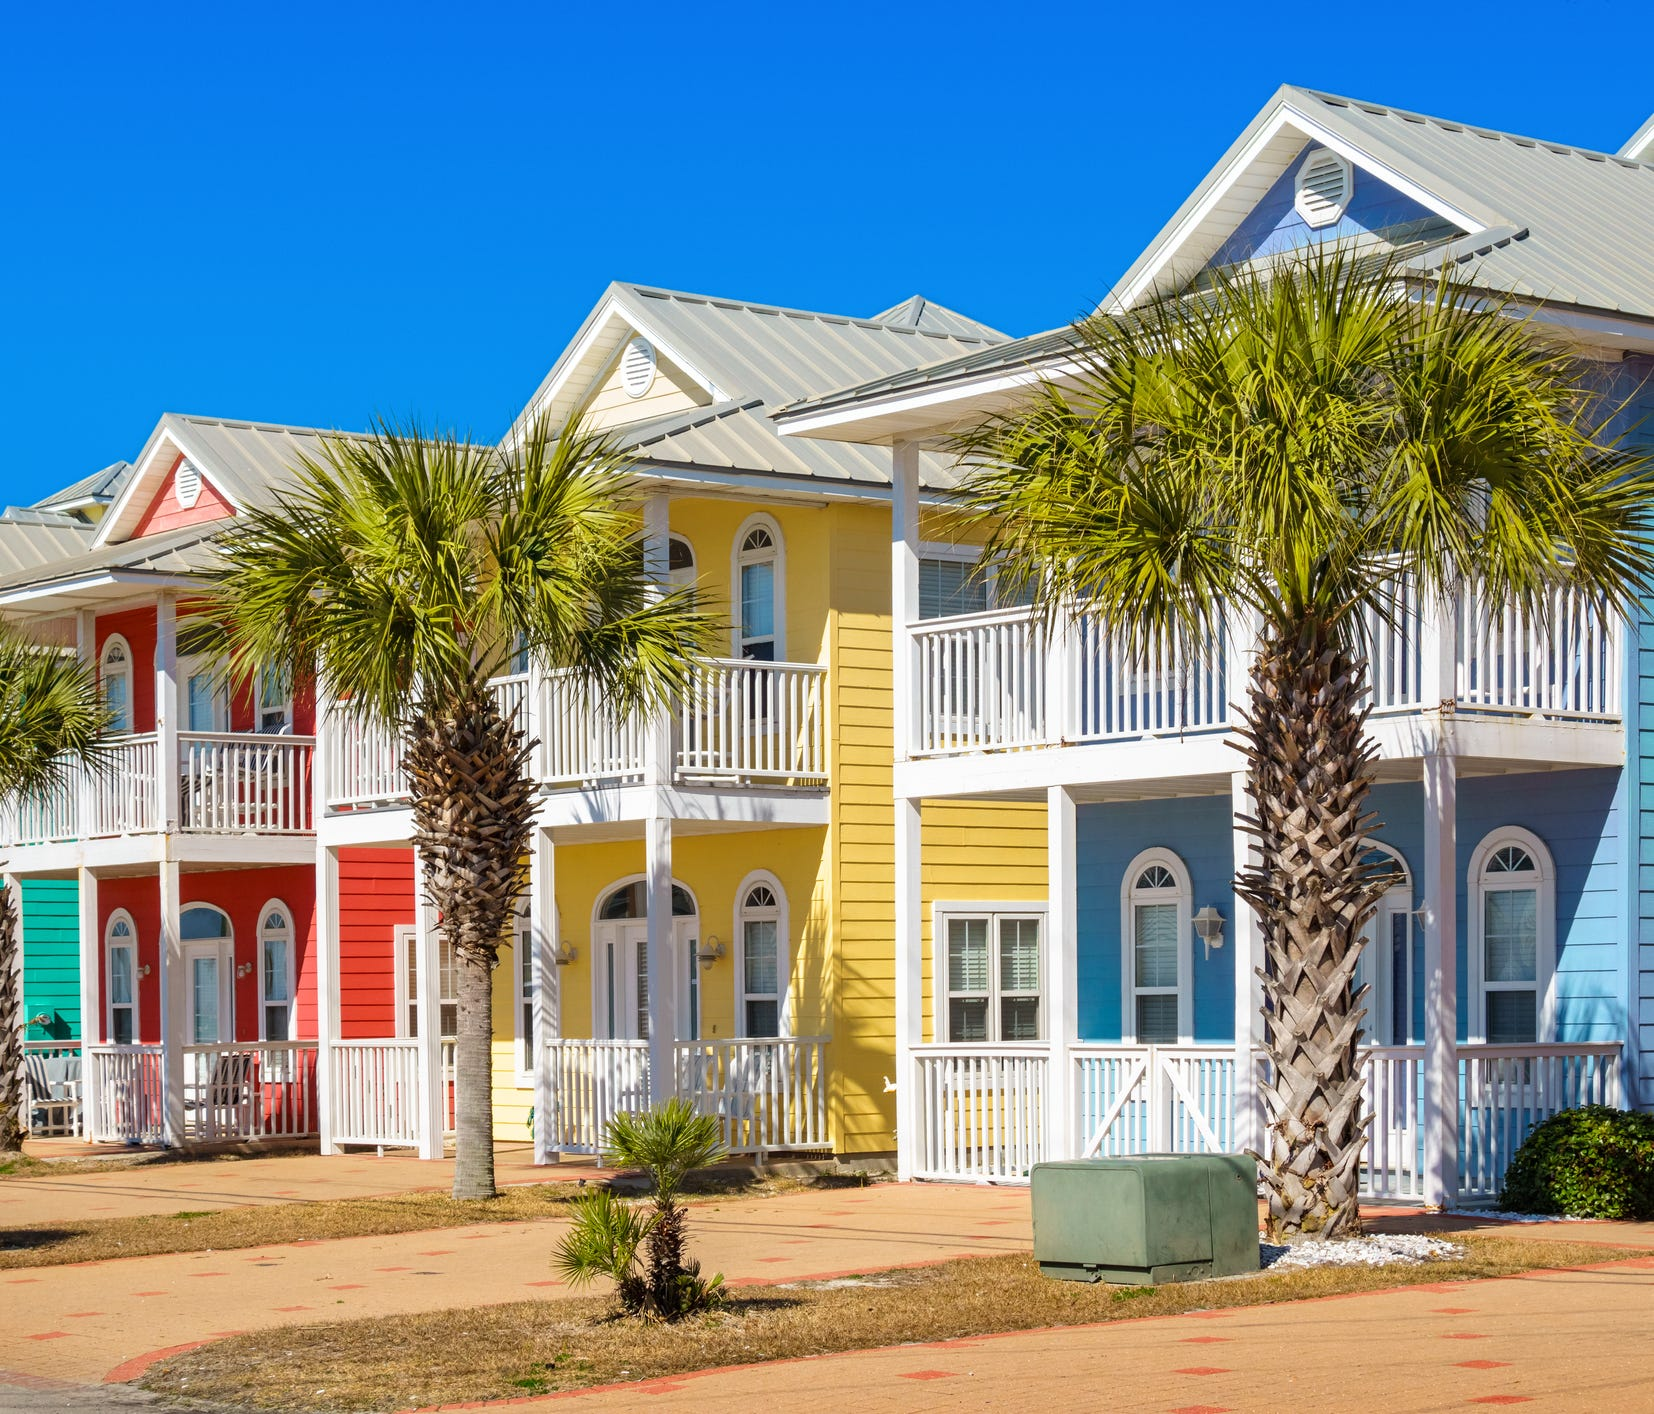 Rented.com looked at a number of factors that affect return on investment, including housing prices, real estate taxes and the local rental market, to determine the best places to own. No. 1: Panama City Beach, Fla.; 98.9 points out of 100. We've see